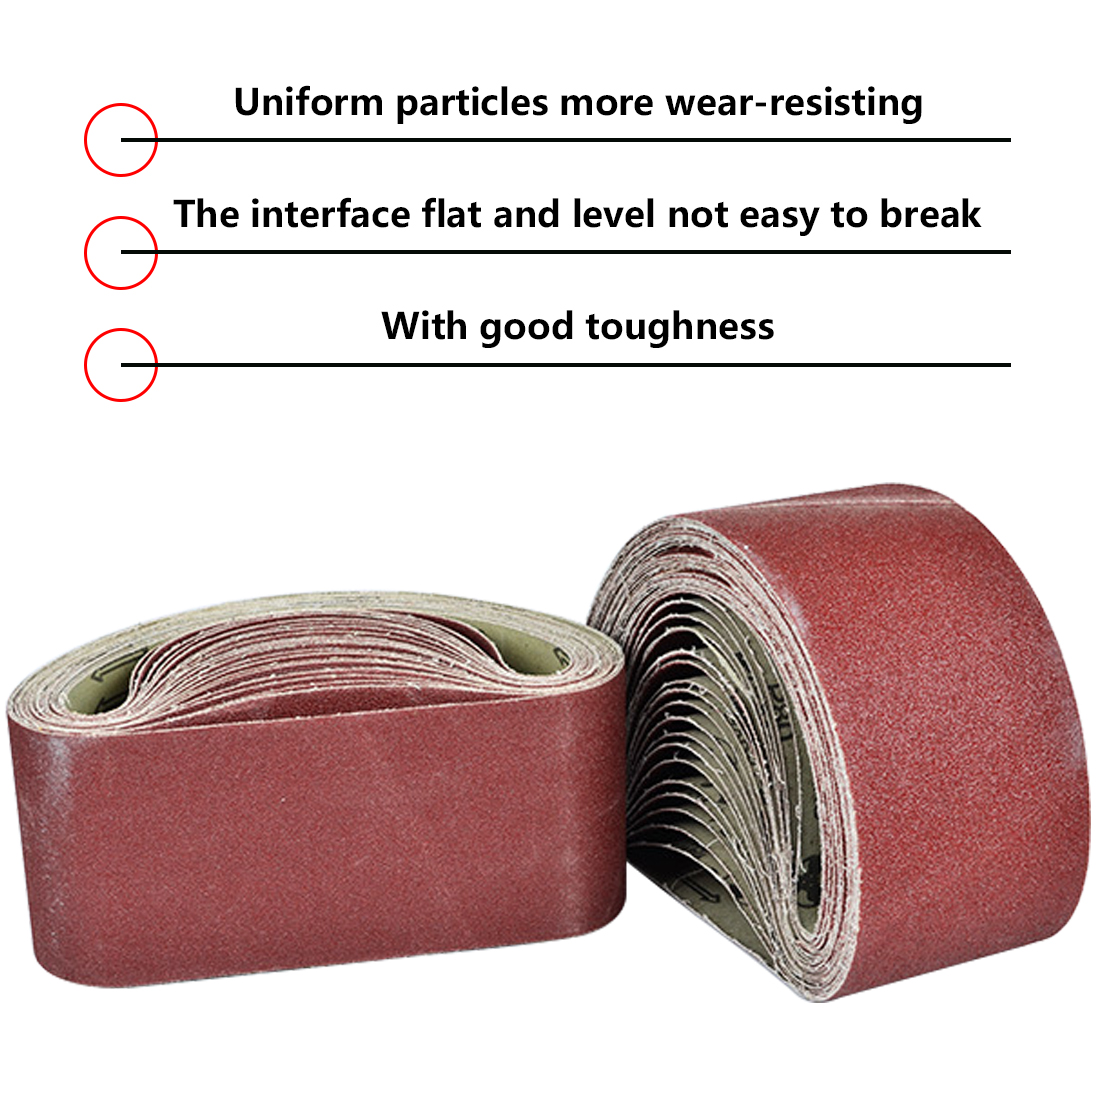 Tools Search For Flights Sanding Belts 533x75mm 80-320 Grits Sandpaper Abrasive Bands For Sander Power Rotary Tools Dremel Accessories Abrasive Tool Demand Exceeding Supply